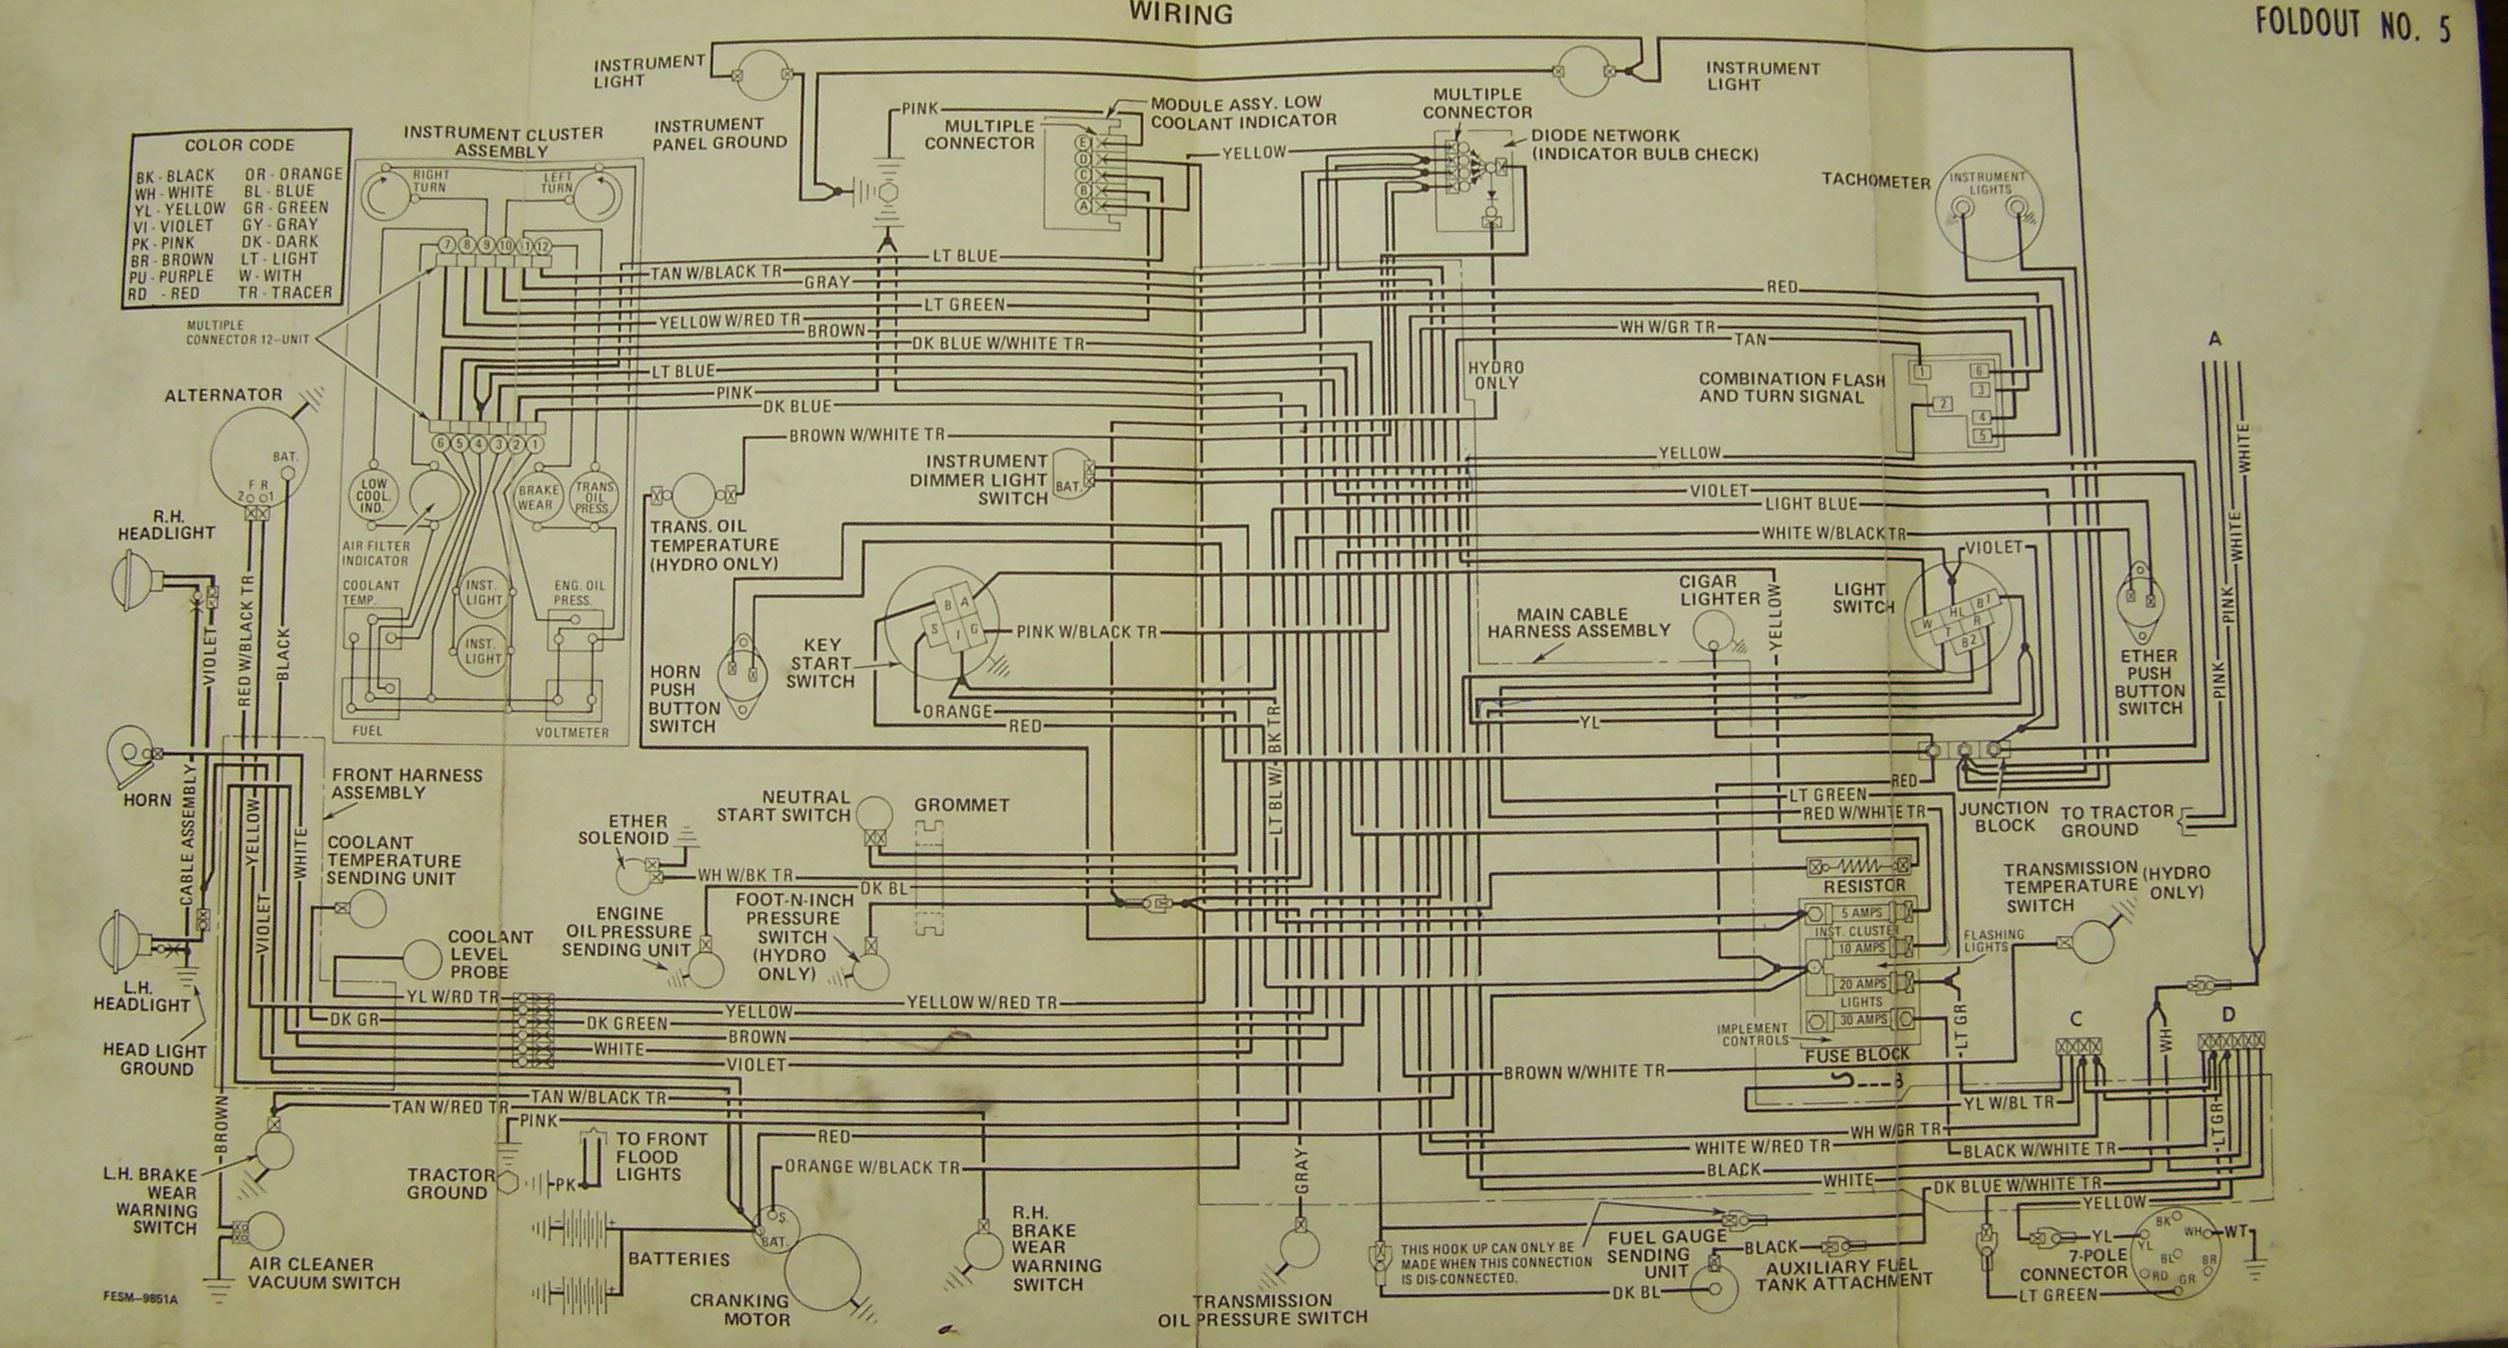 86series5 ih 574 wiring diagram case 430 tractor wiring diagram \u2022 wiring International 4300 Wiring Diagram Schematics at bayanpartner.co